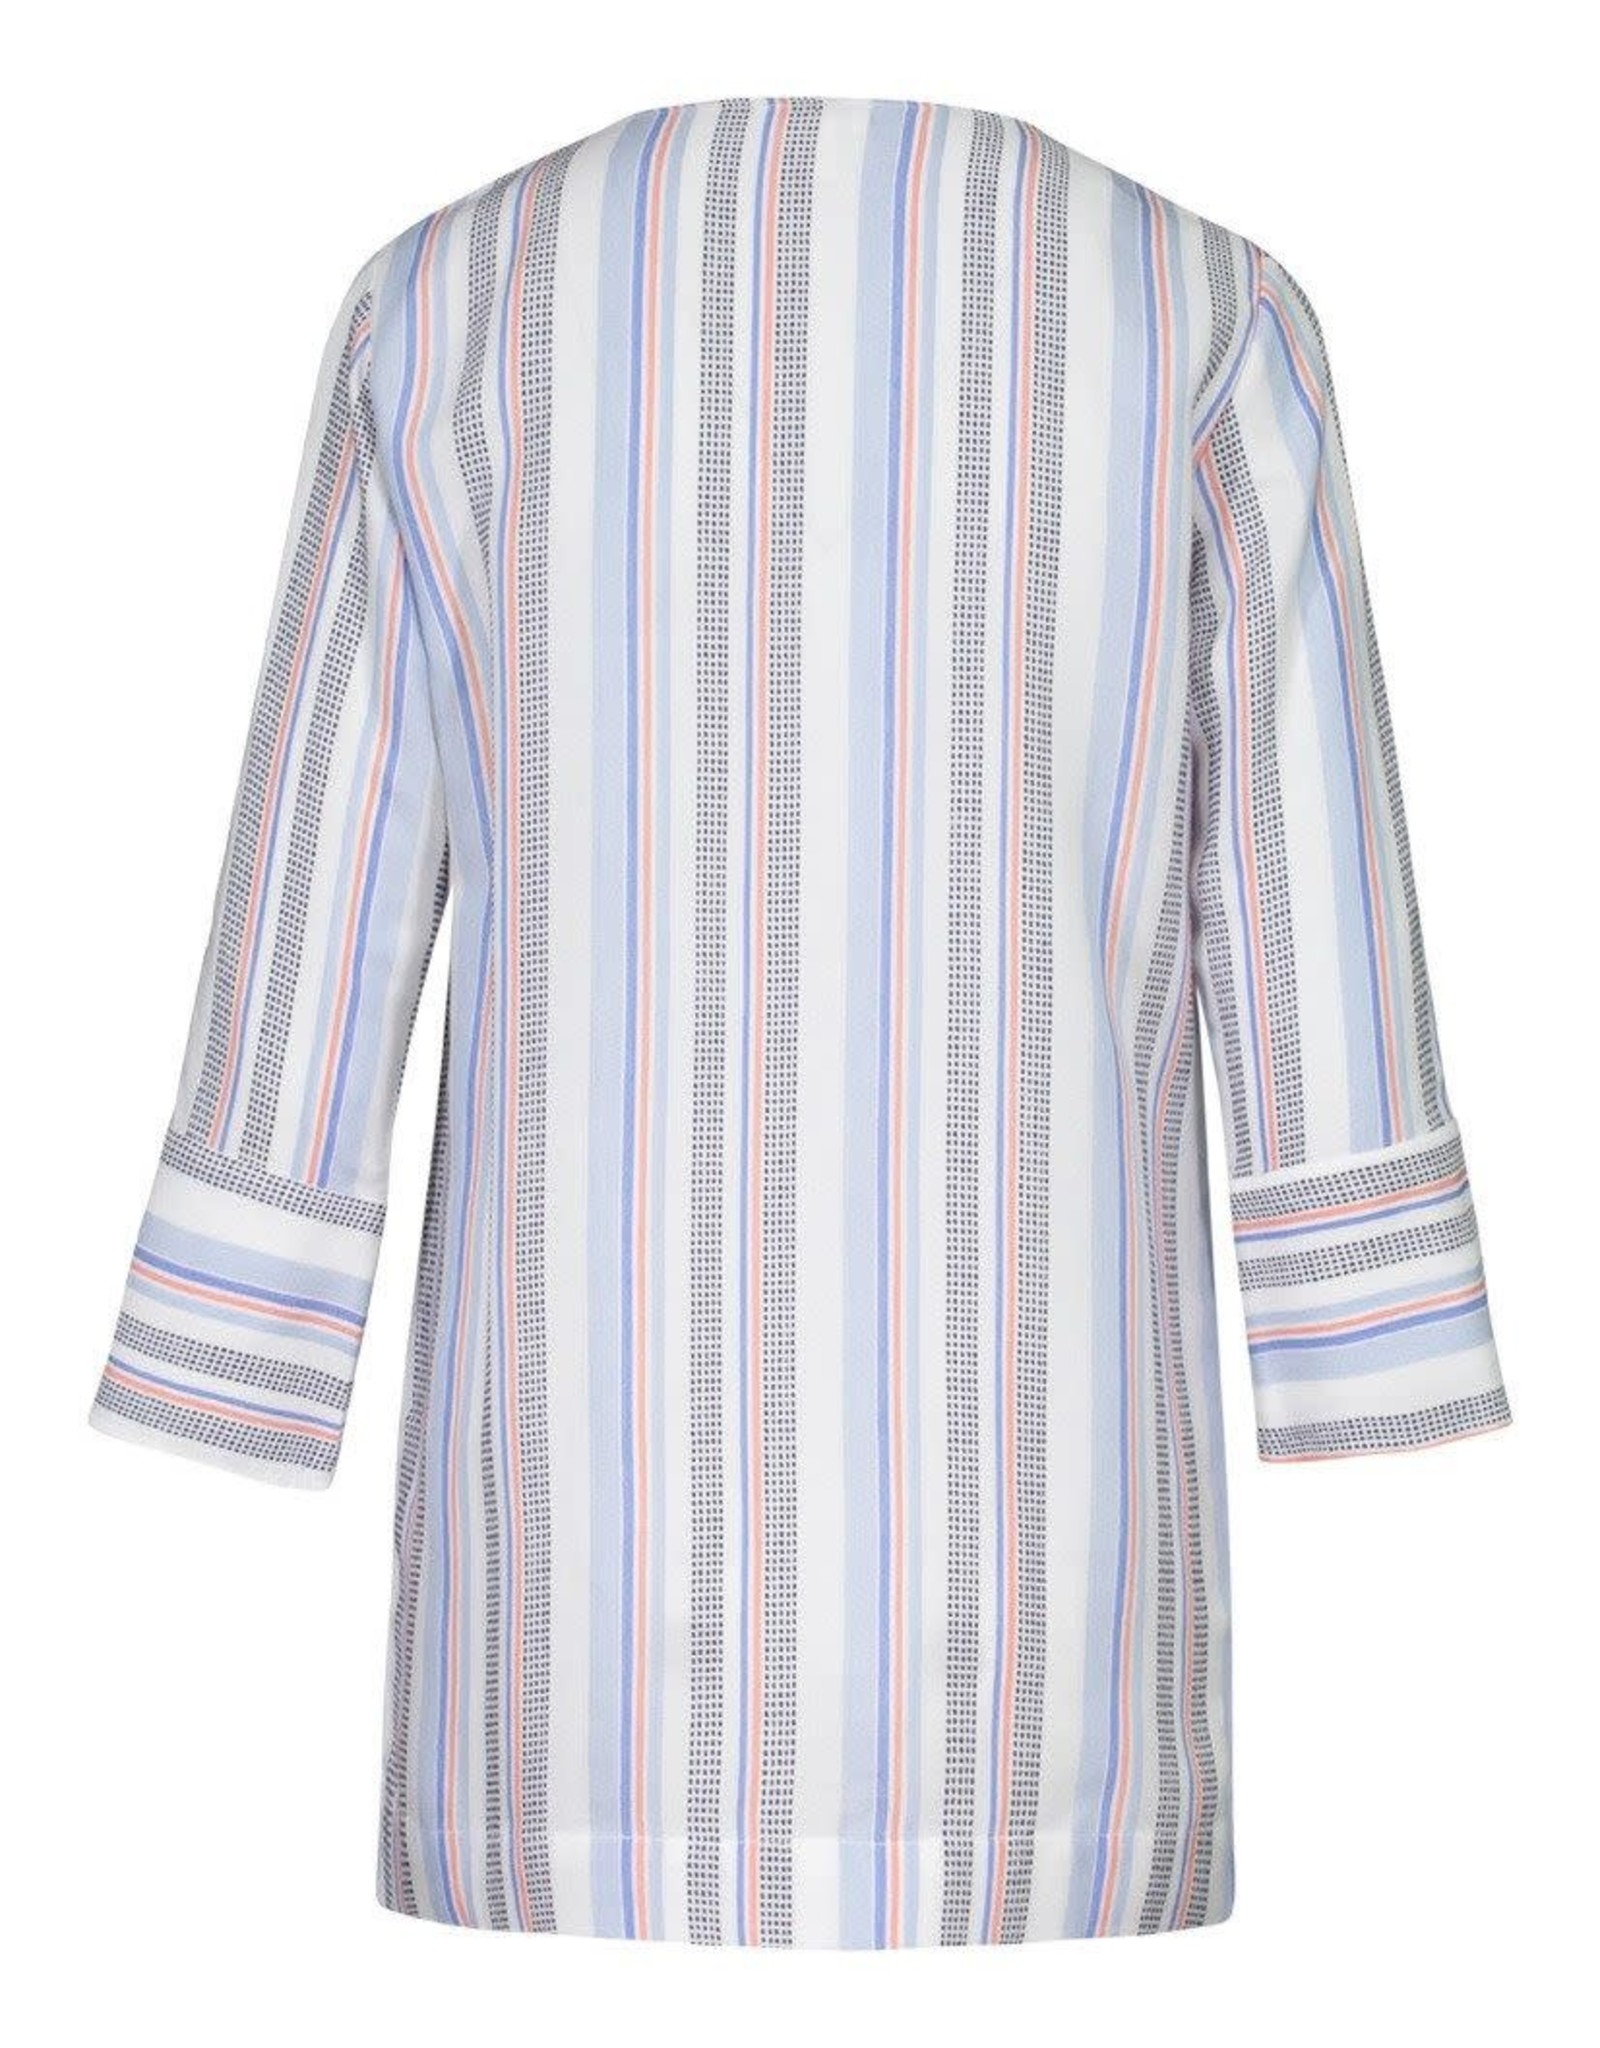 Tribal White Striped 3/4 Sleeve Top w/Lace-up Neck